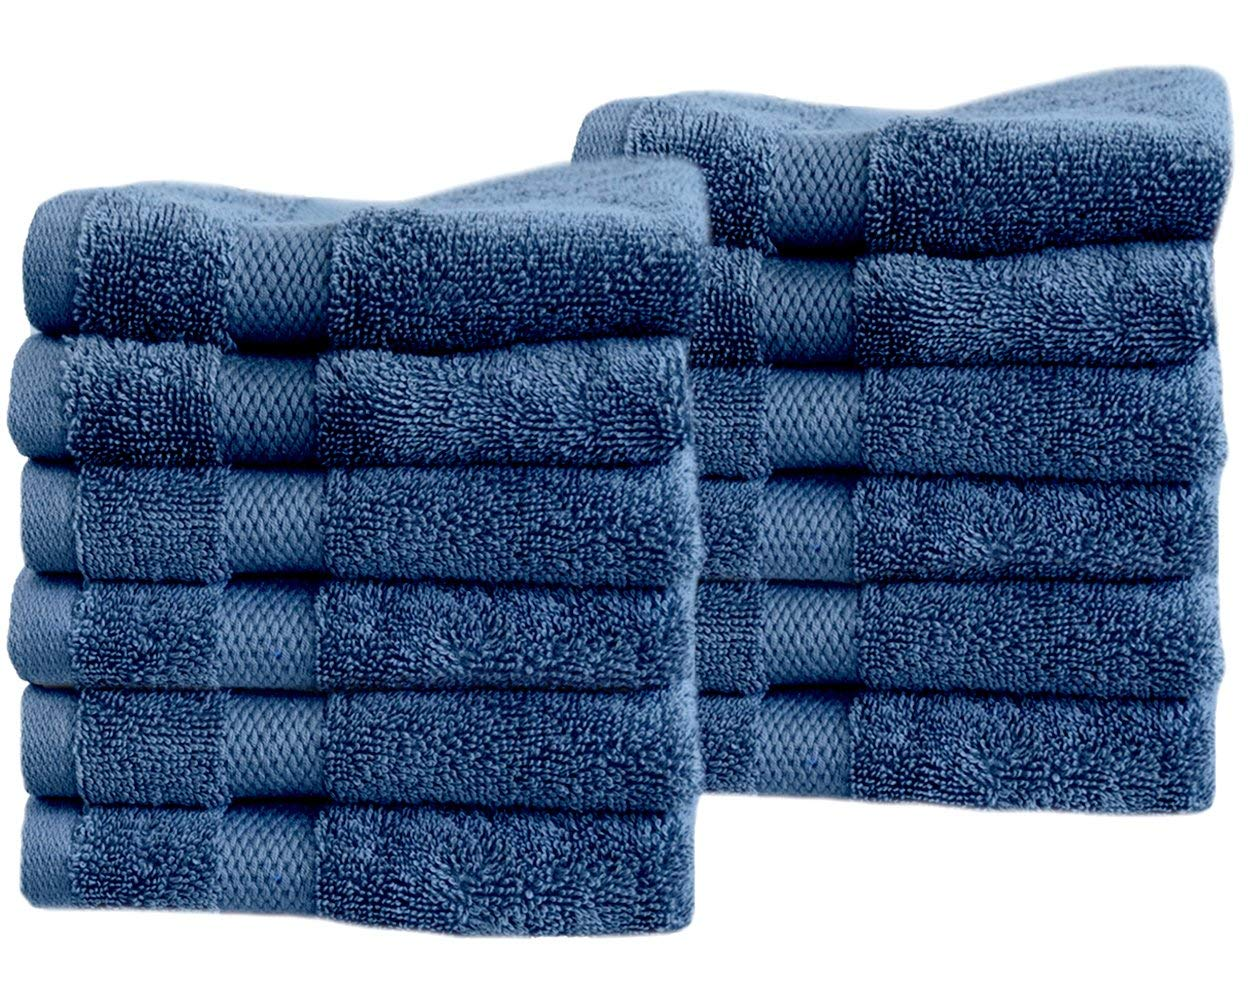 """Cotton & Calm Exquisitely Fluffy Washcloths/Face Cloths Towel Set (12 Pack, 13"""" x 13""""), Premium Blue Washcloths - Super Soft, Thick, and Absorbent for Face, Hand, Spa & Gym"""